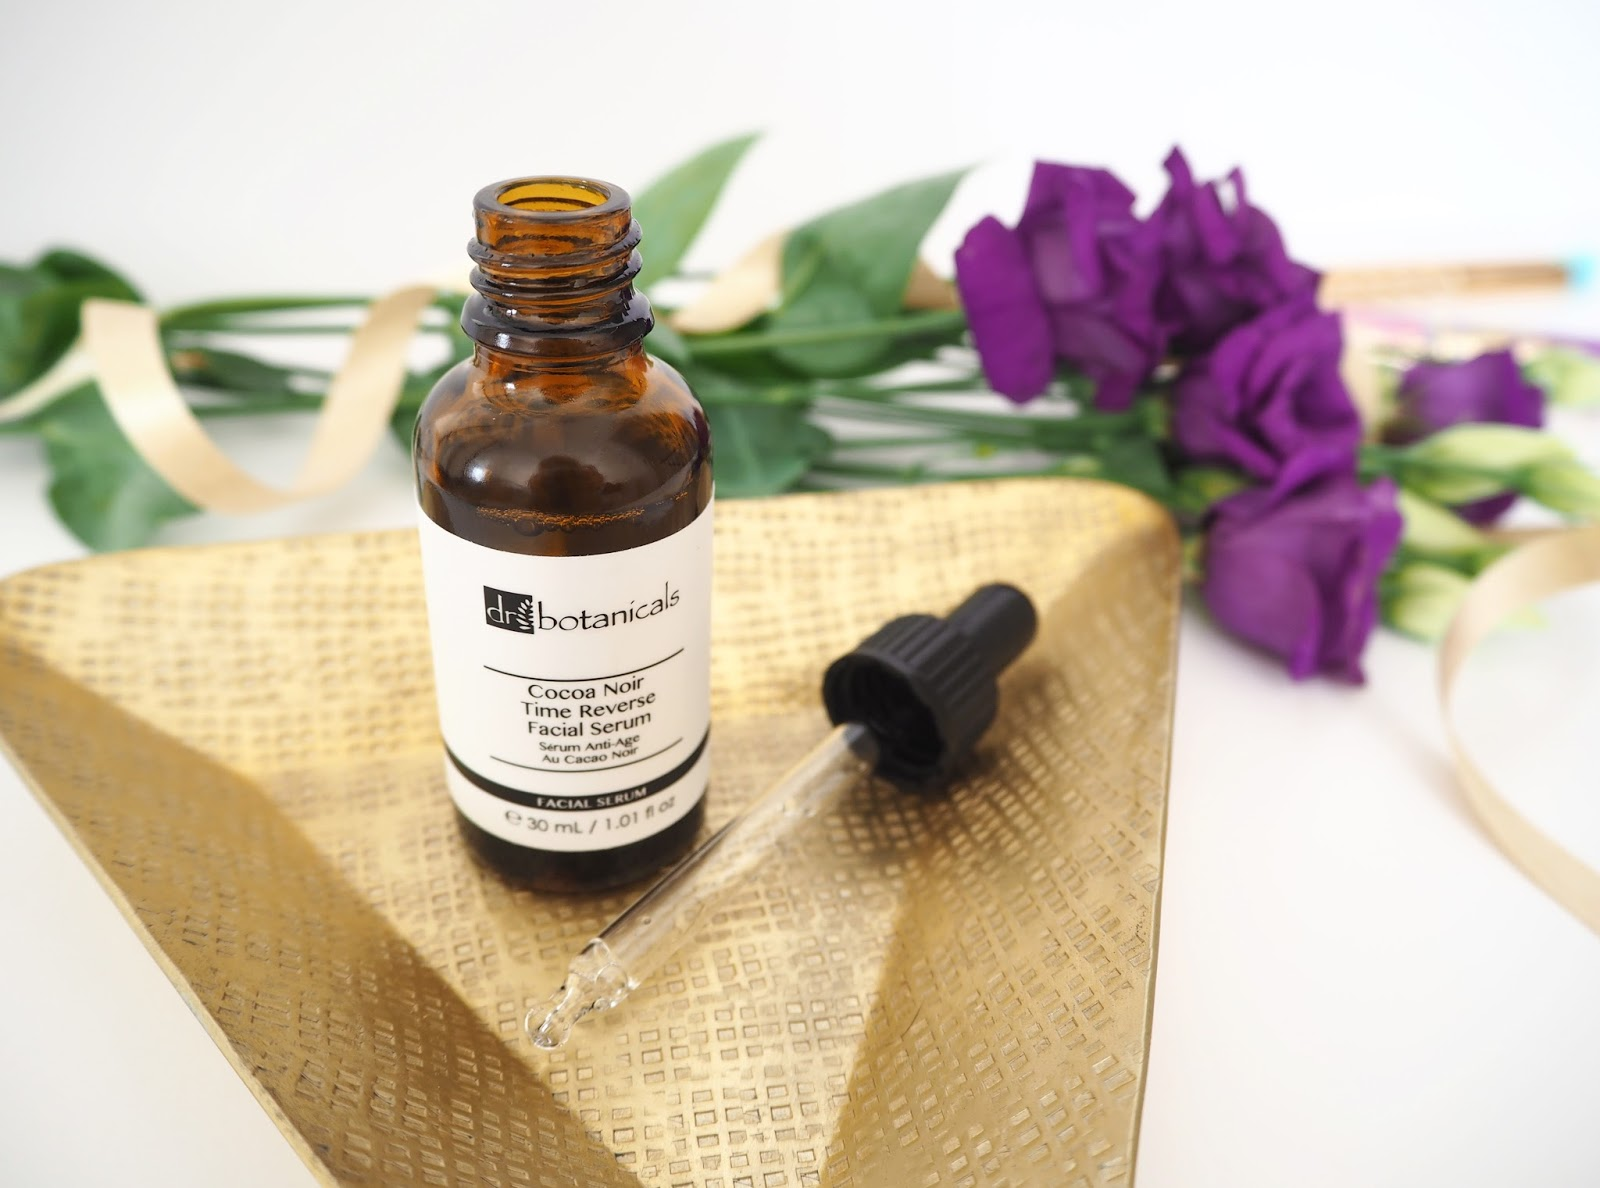 Dr Botanicals Cocoa Noir Time Reverse Facial Serum, Katie Kirk Loves, Beauty Blogger, Dr Botanicals Skincare, UK Blogger, Skincare Review, Discount Code, Beauty Sleep, Facial Serum, Facial Treatment, Skincare Routine, Luxury Skincare Products